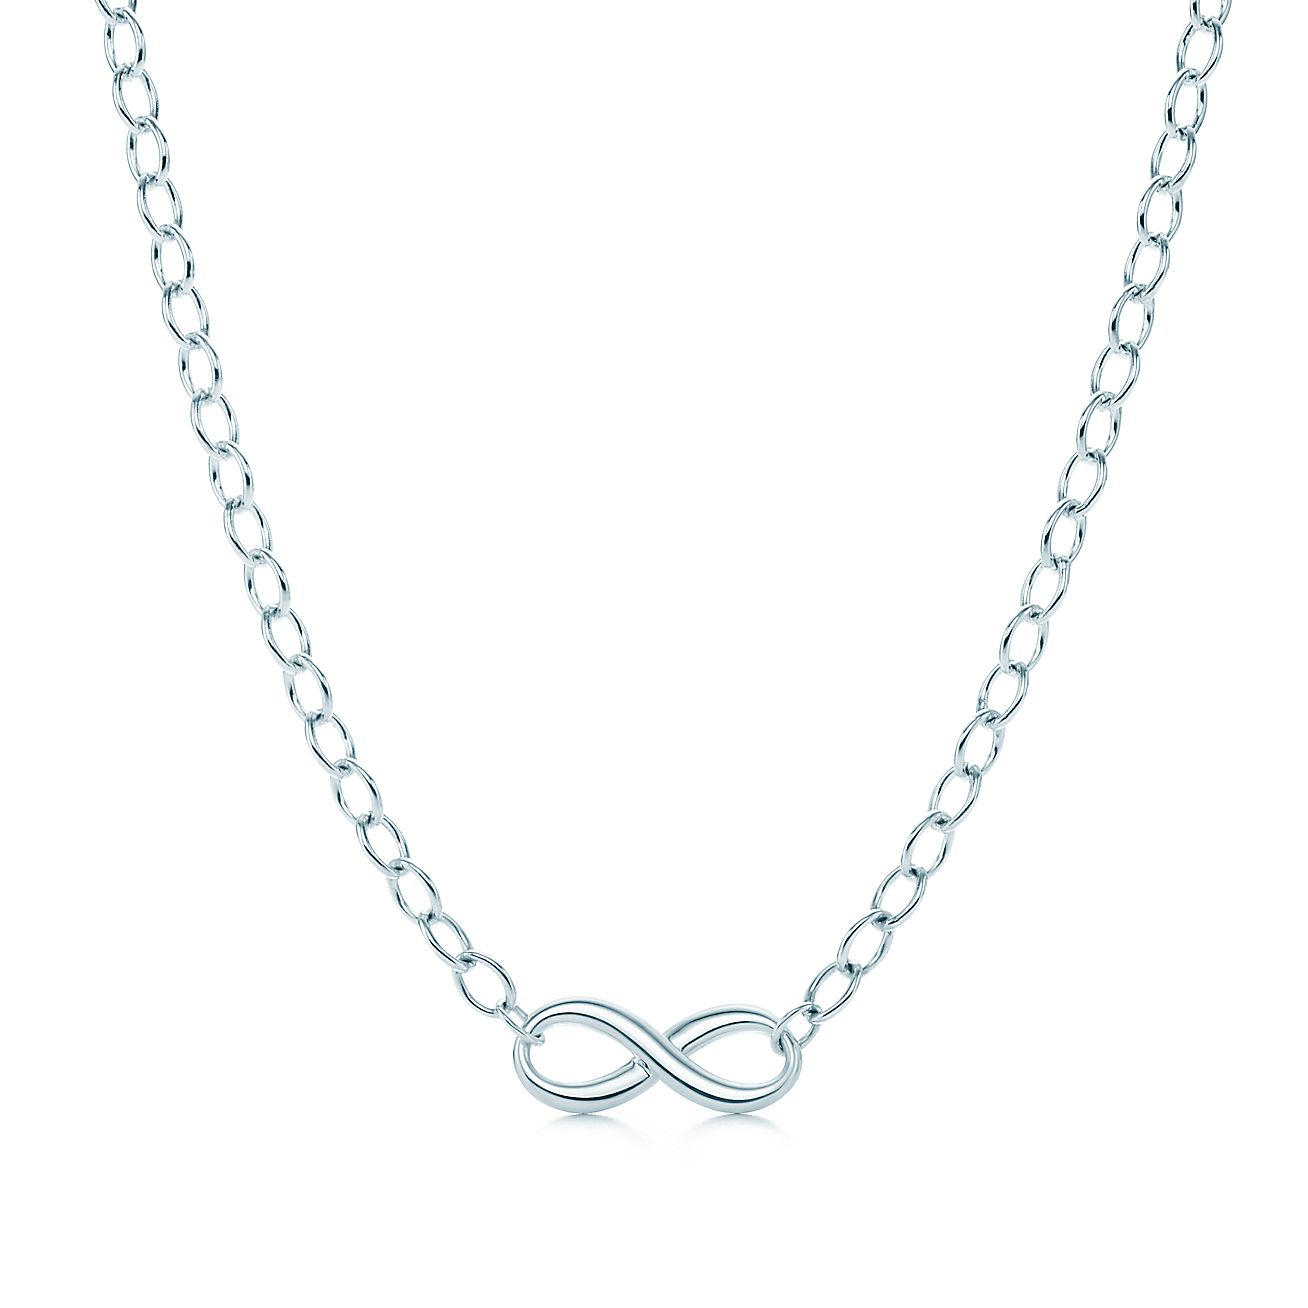 Tiffany Infinity necklace in sterling silver. | Tiffany